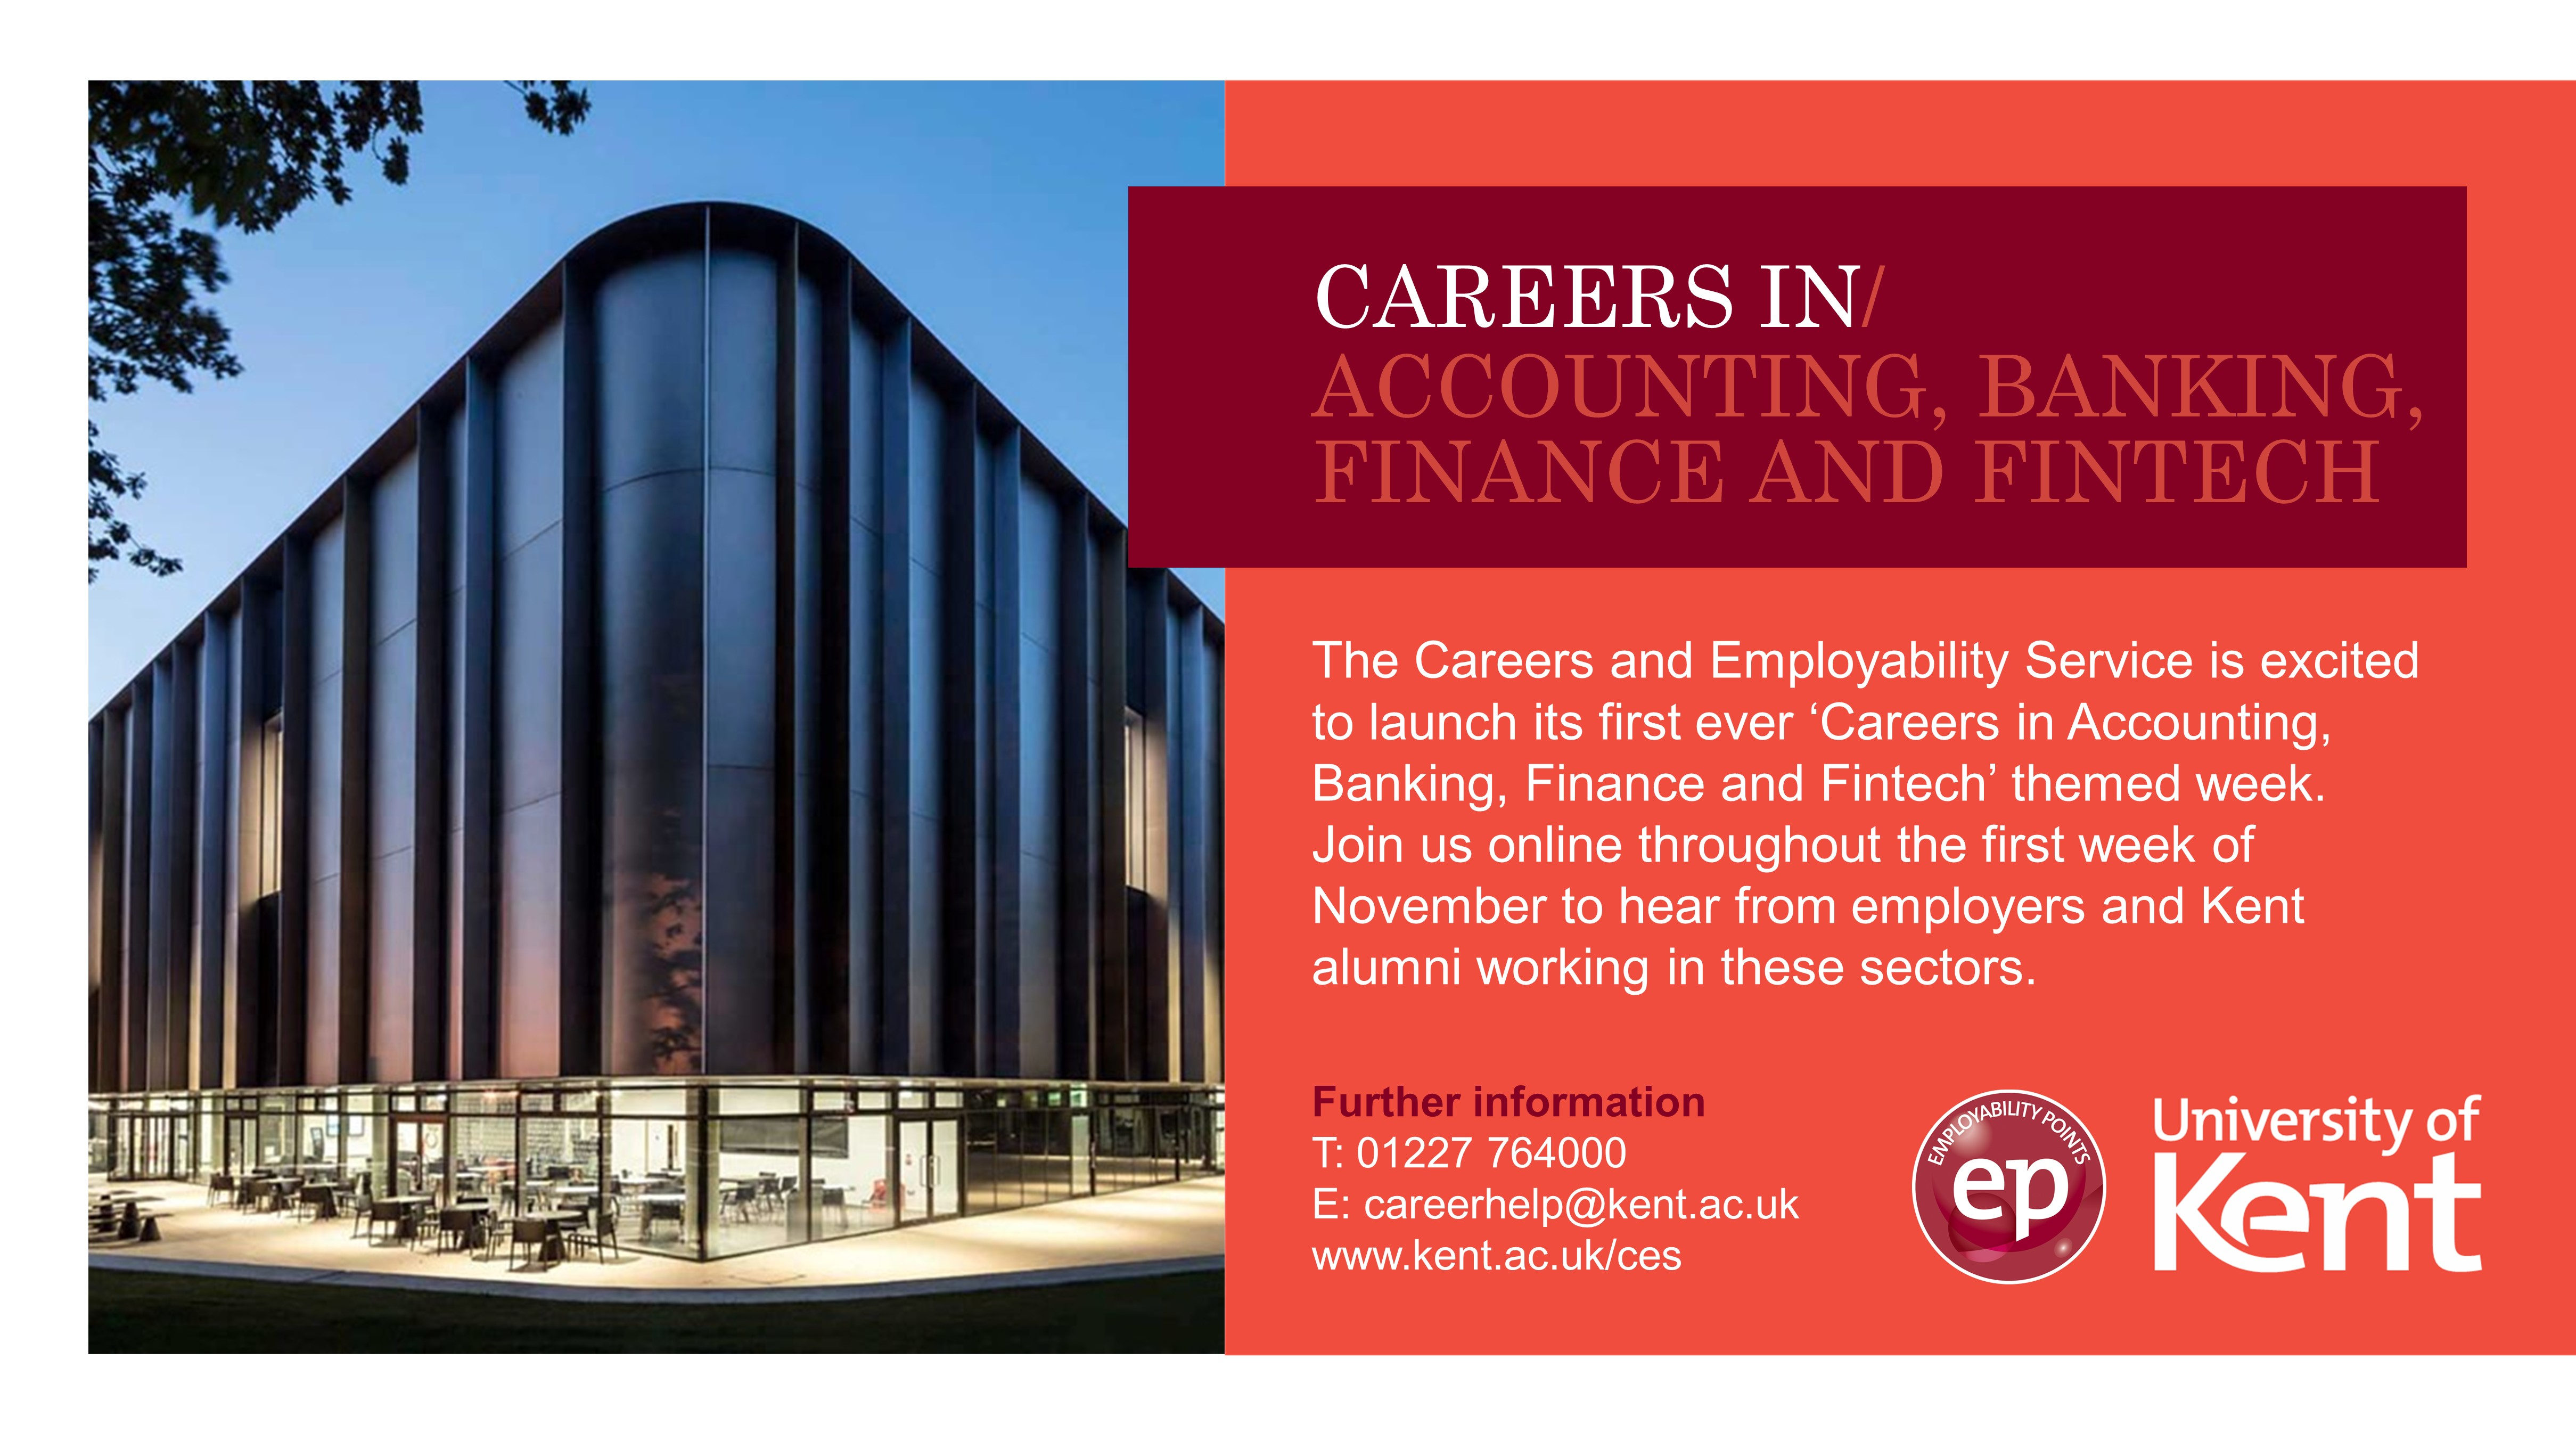 Careers in accounting, banking, finance and fintech